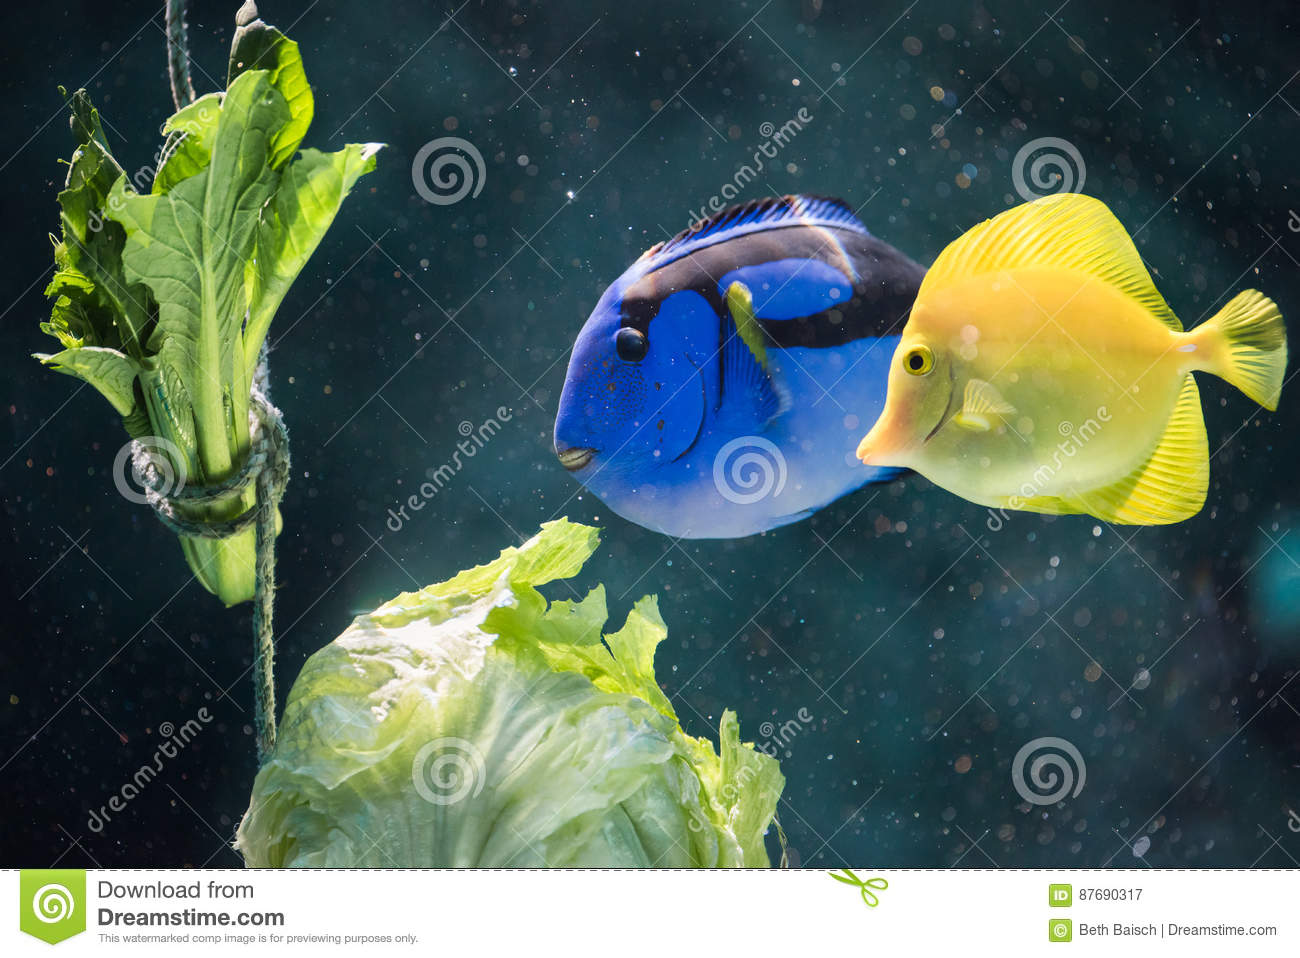 Blue and Yellow Tang Fish Eating Lettuce